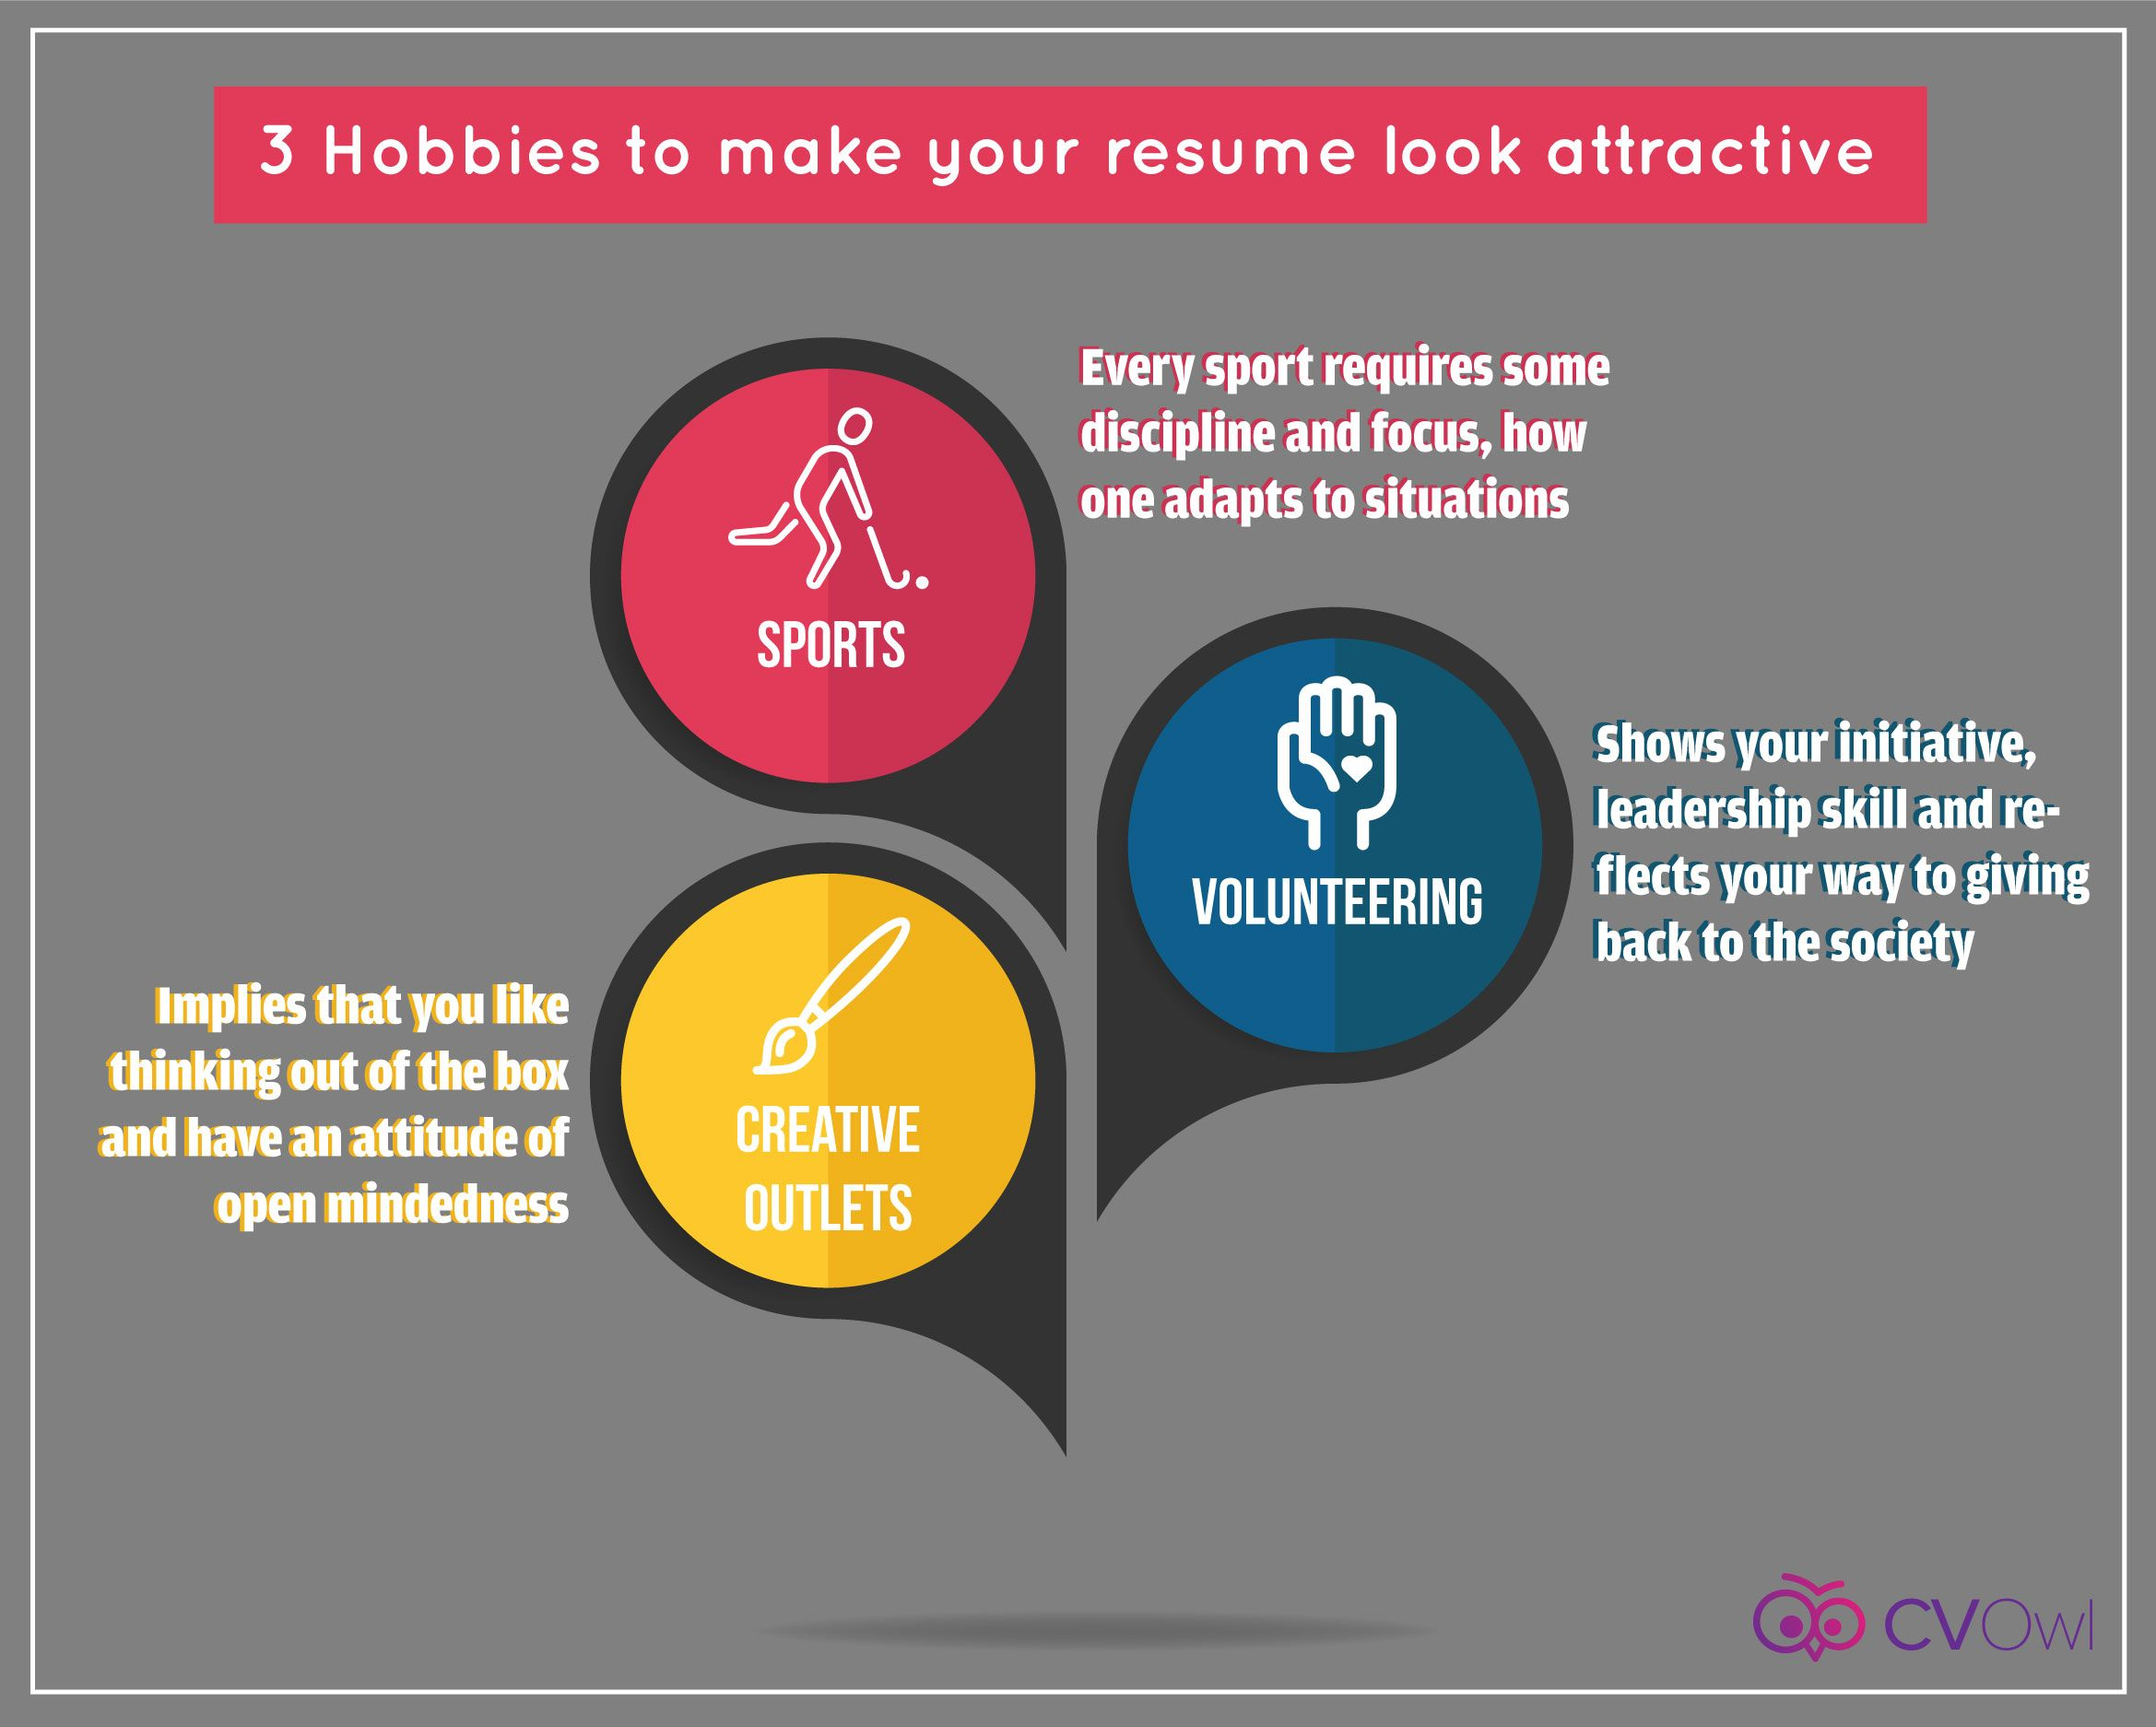 3 Hobbies to make your resume look attractive